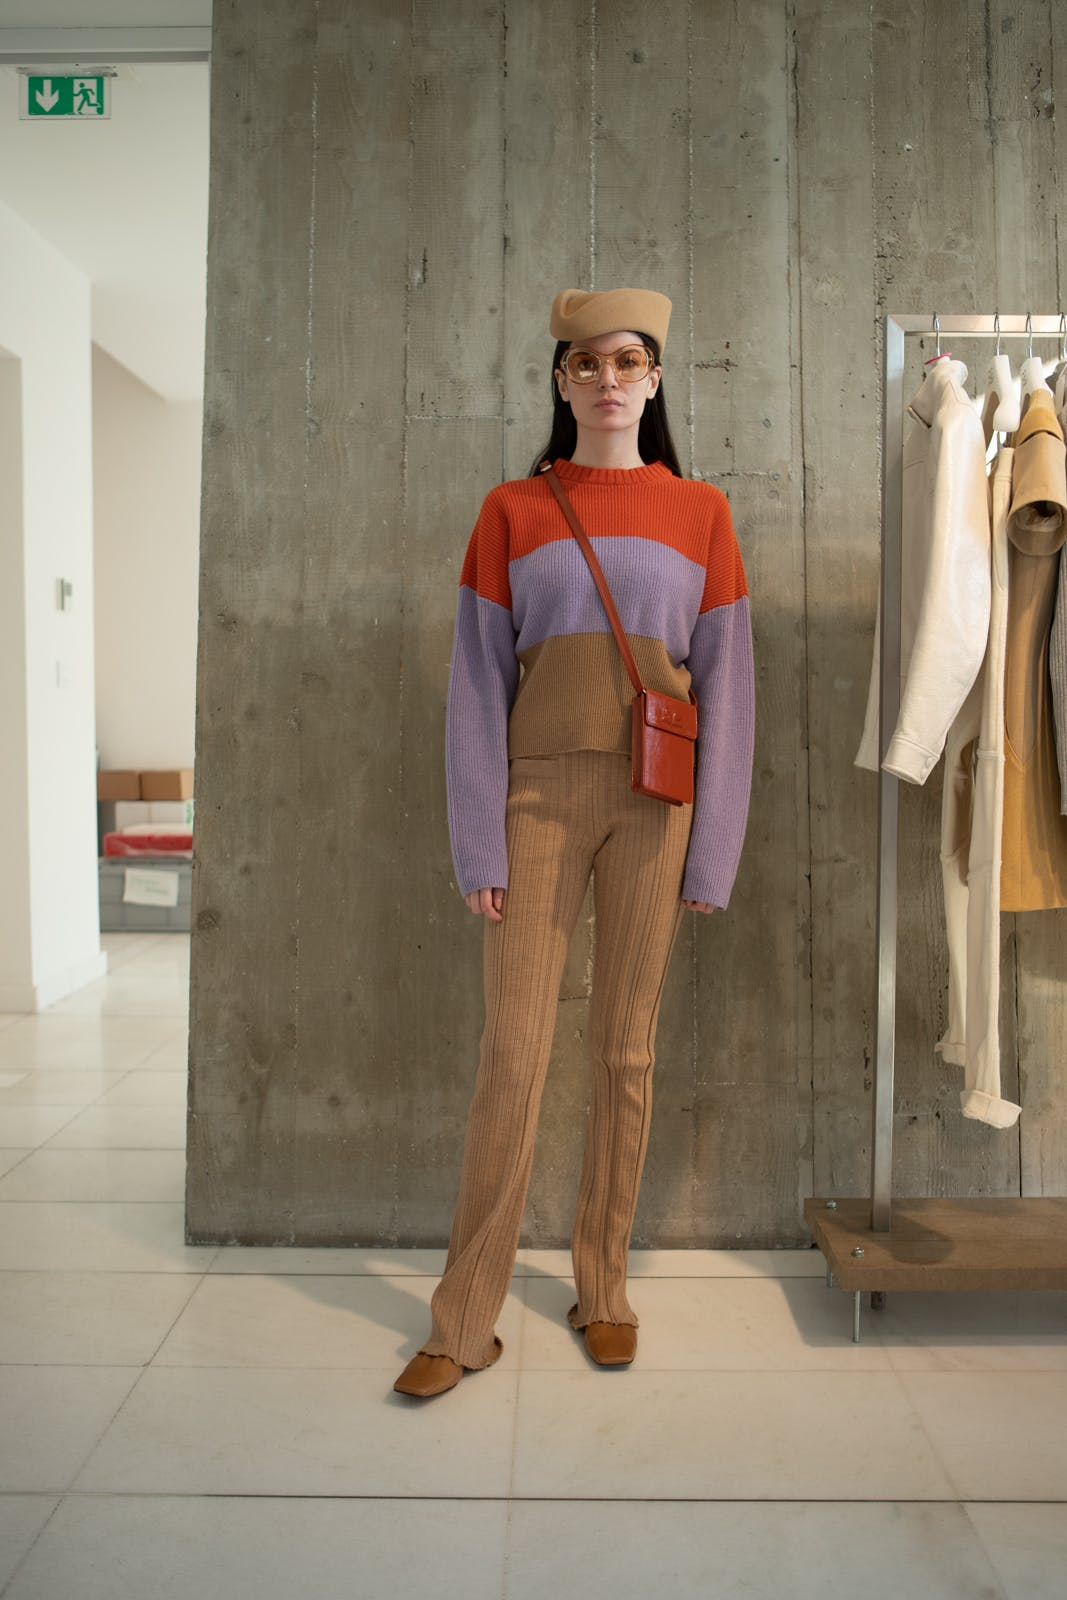 courreges fall winter 2020 runway show backstage womenswear showroom pre order trunk show color block